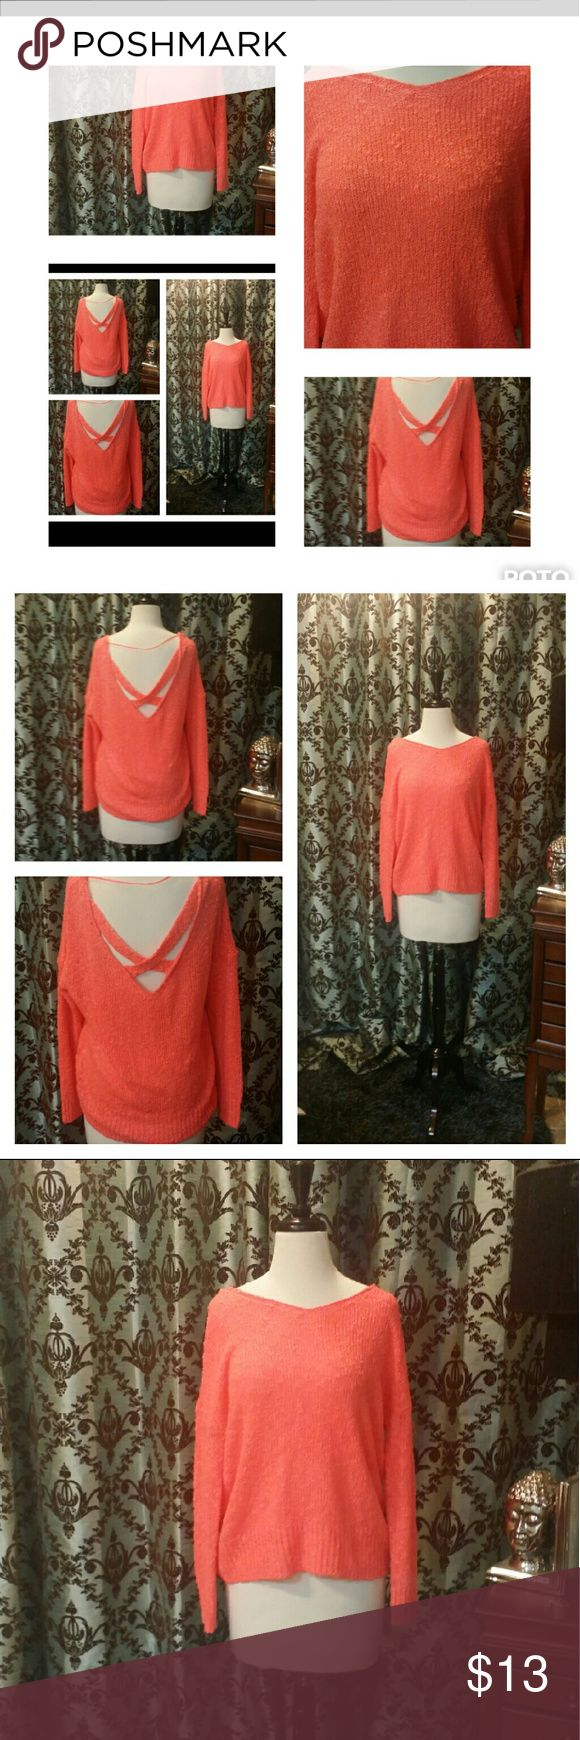 🎈 SALE🎈Coral Off the Shoulder Slouchy  Sweater Coral Off the Shoulder Criss Cross Back Slouchy Comfy Sweater Tops